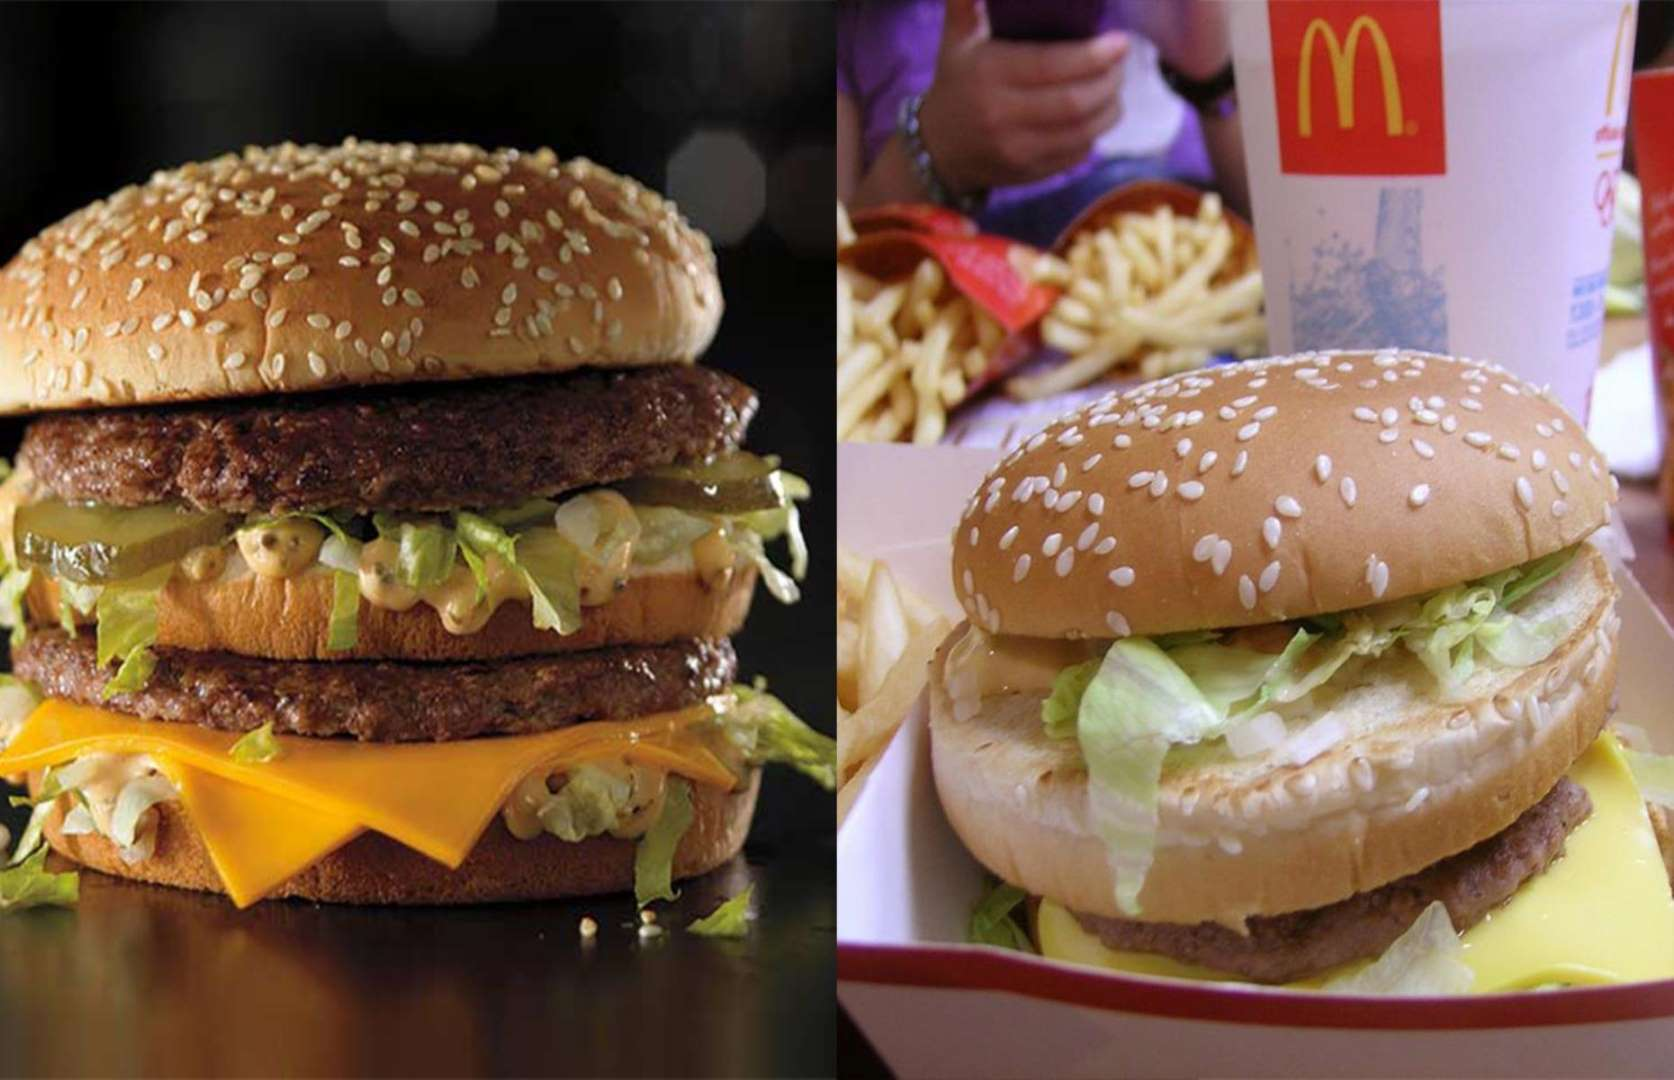 17 Disappointing Fast-Food Burger Fails